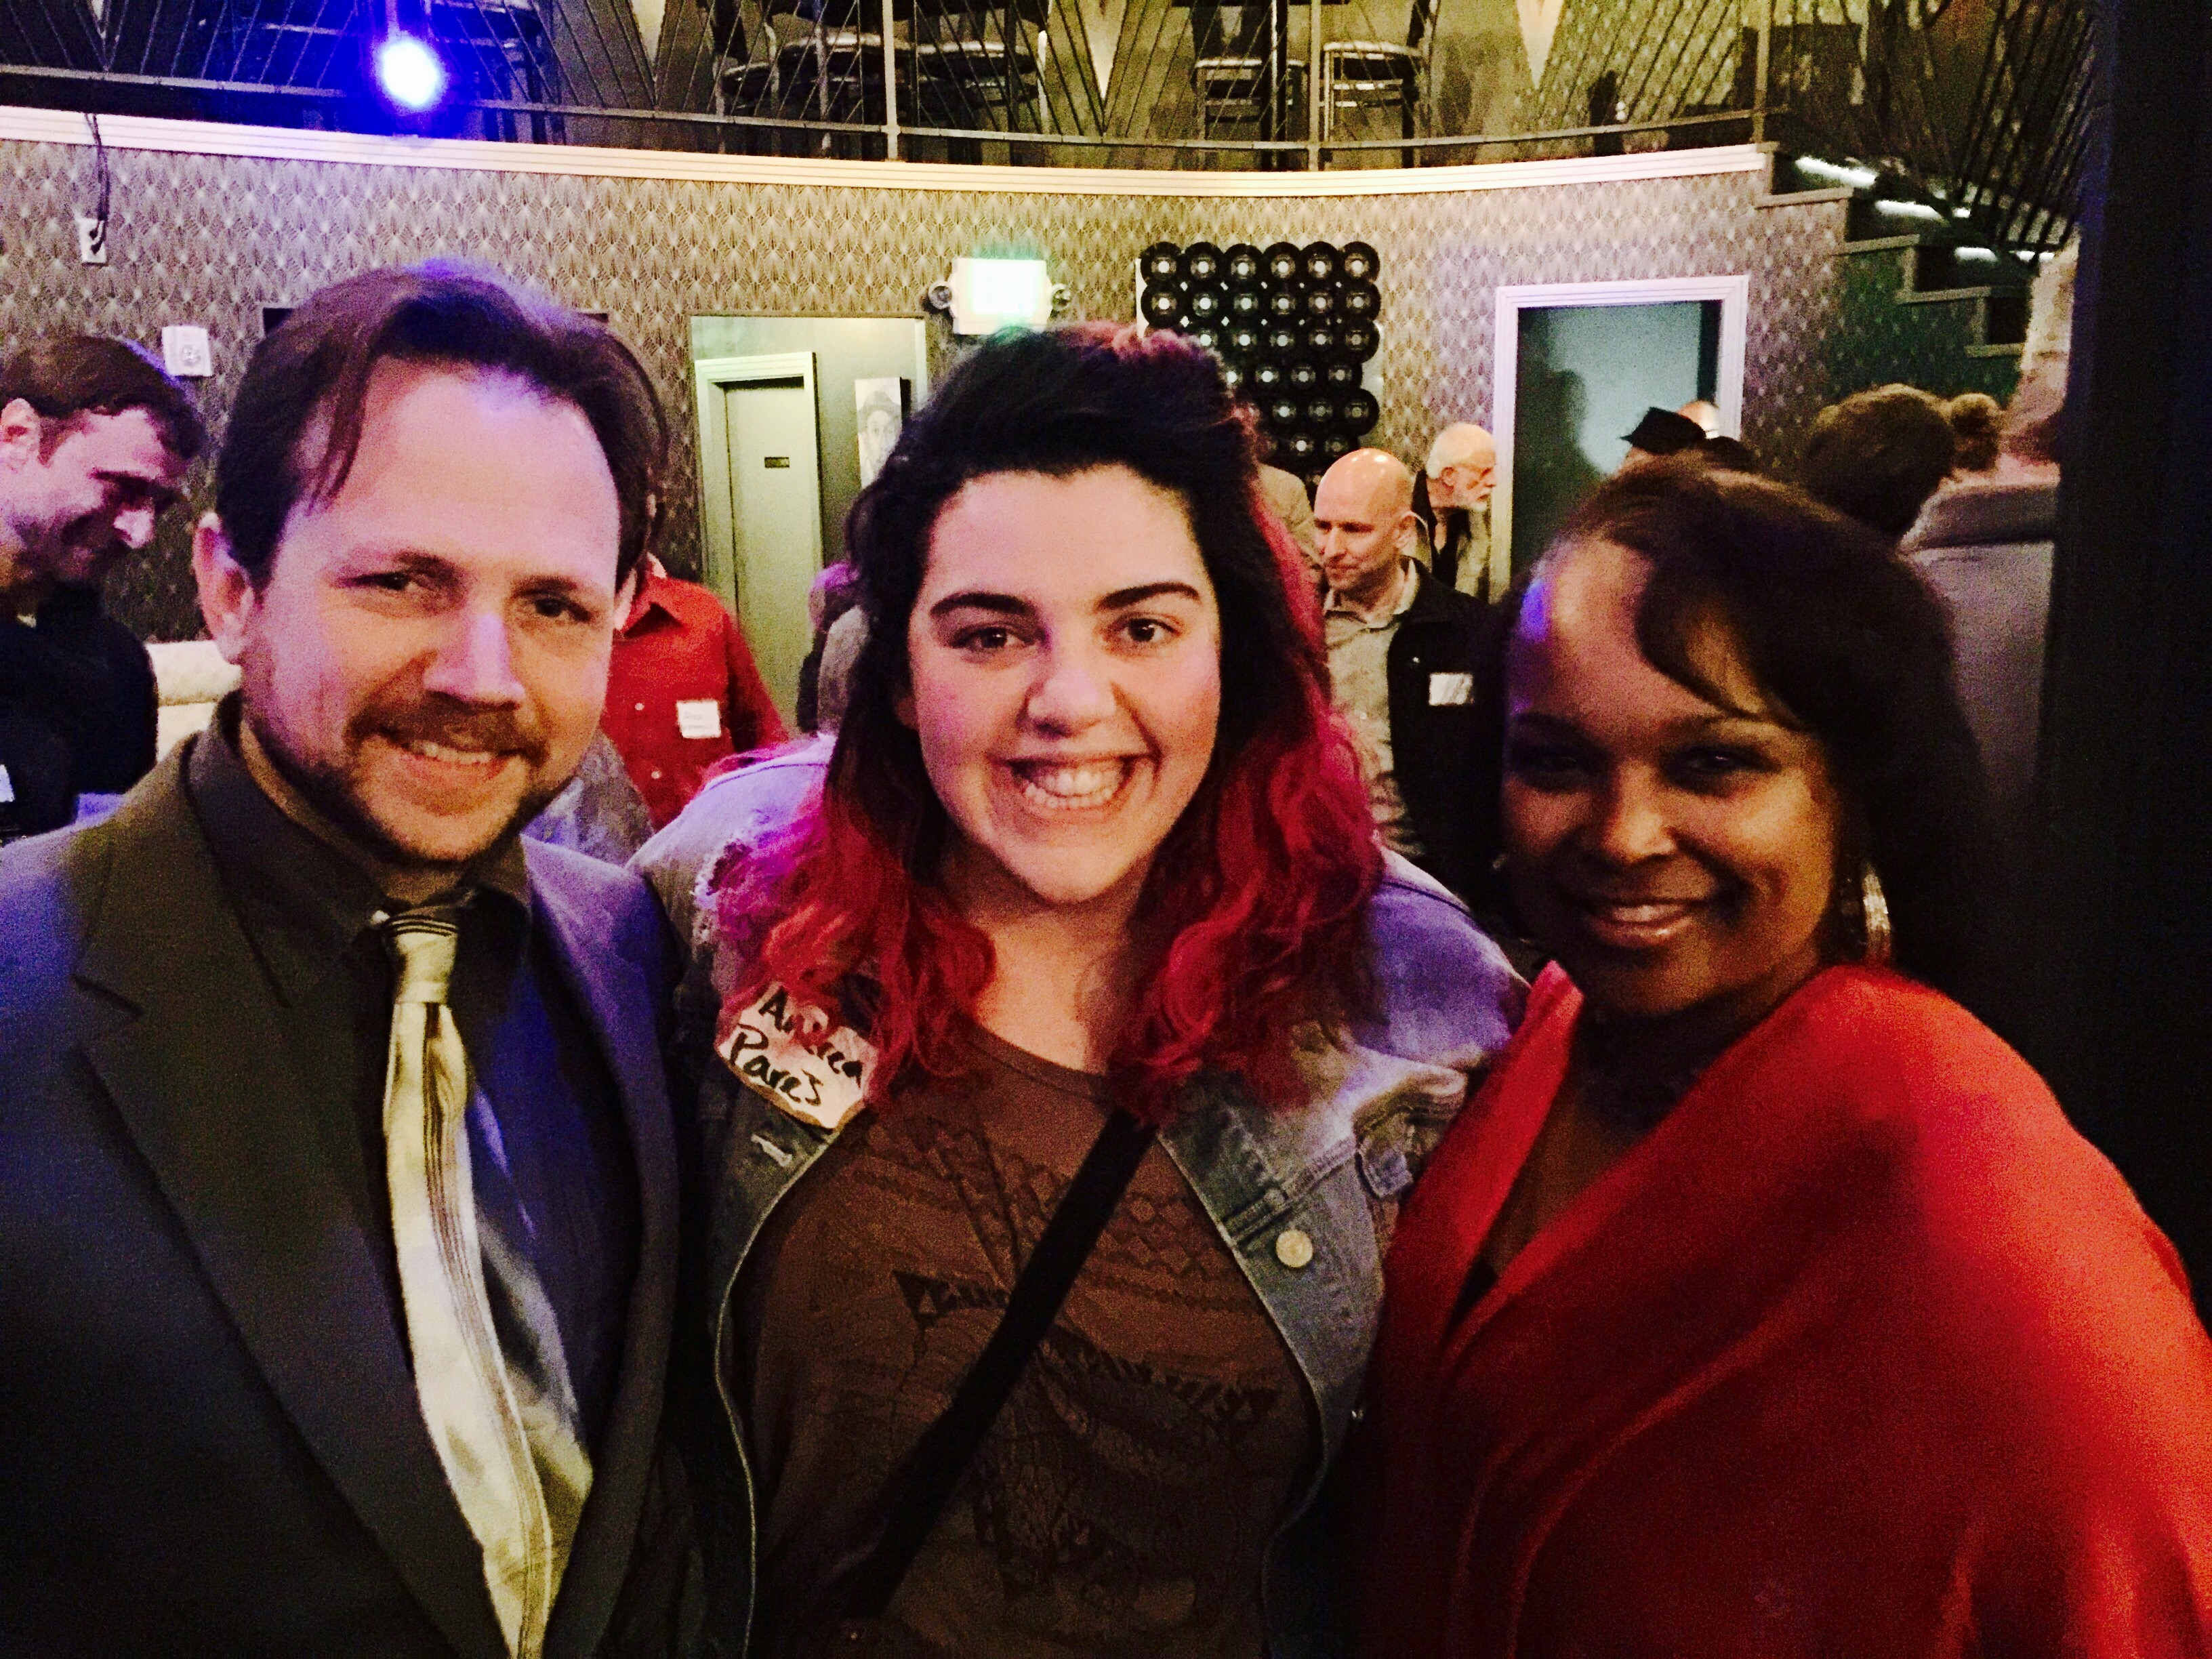 Prof. Peter Stoltzman, music student Andrea Pares, and Denver's First Lady Veteran actor and Singer Mary Louise Lee